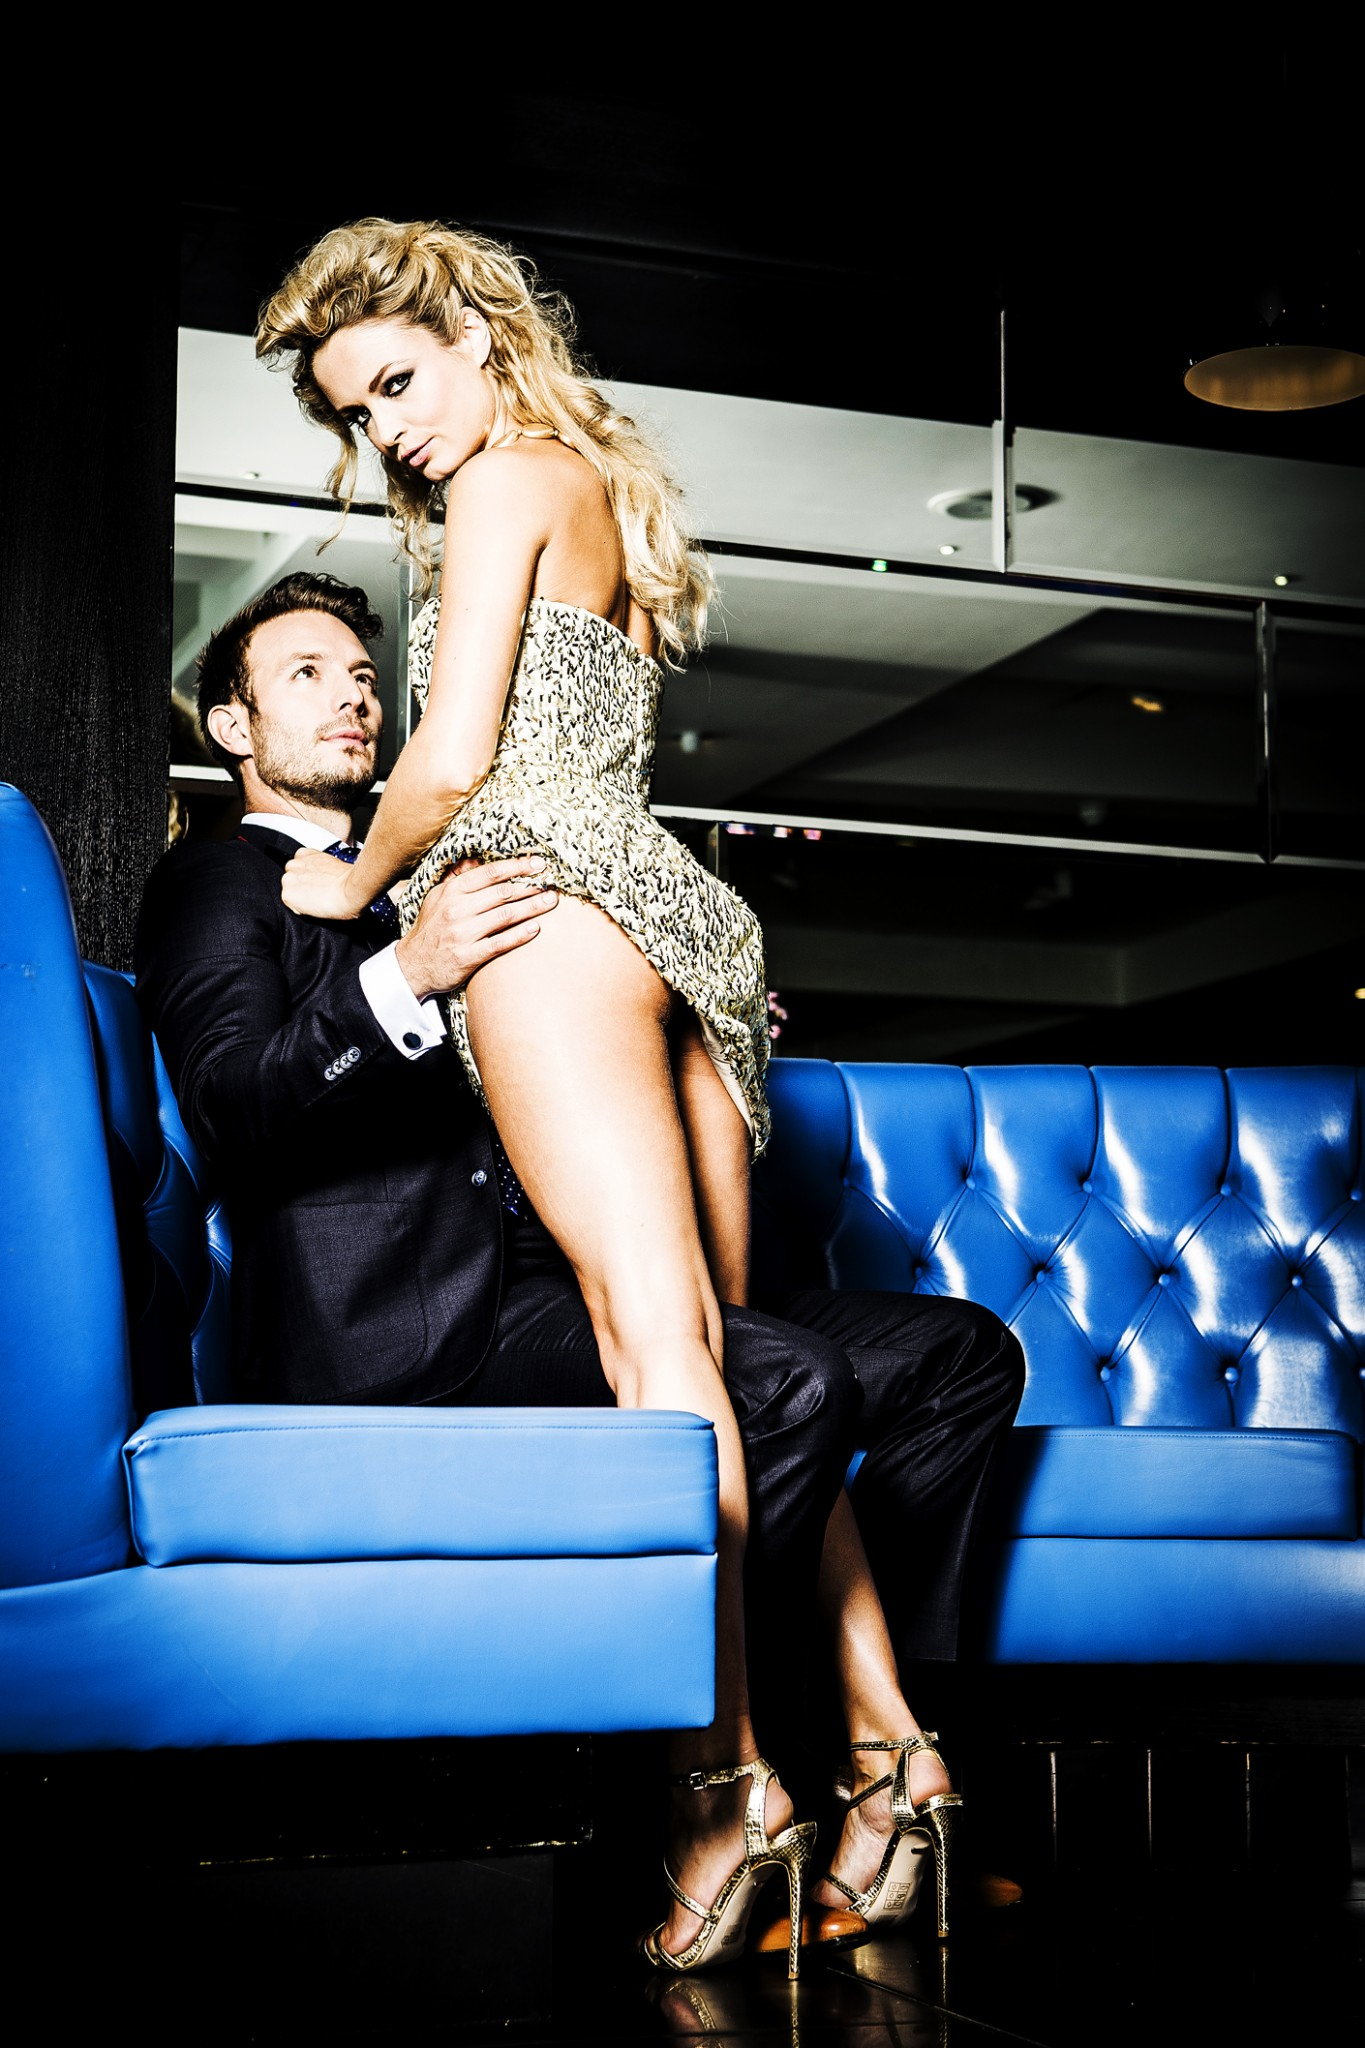 fashion-photography-on-location-in-didsbury-manchester